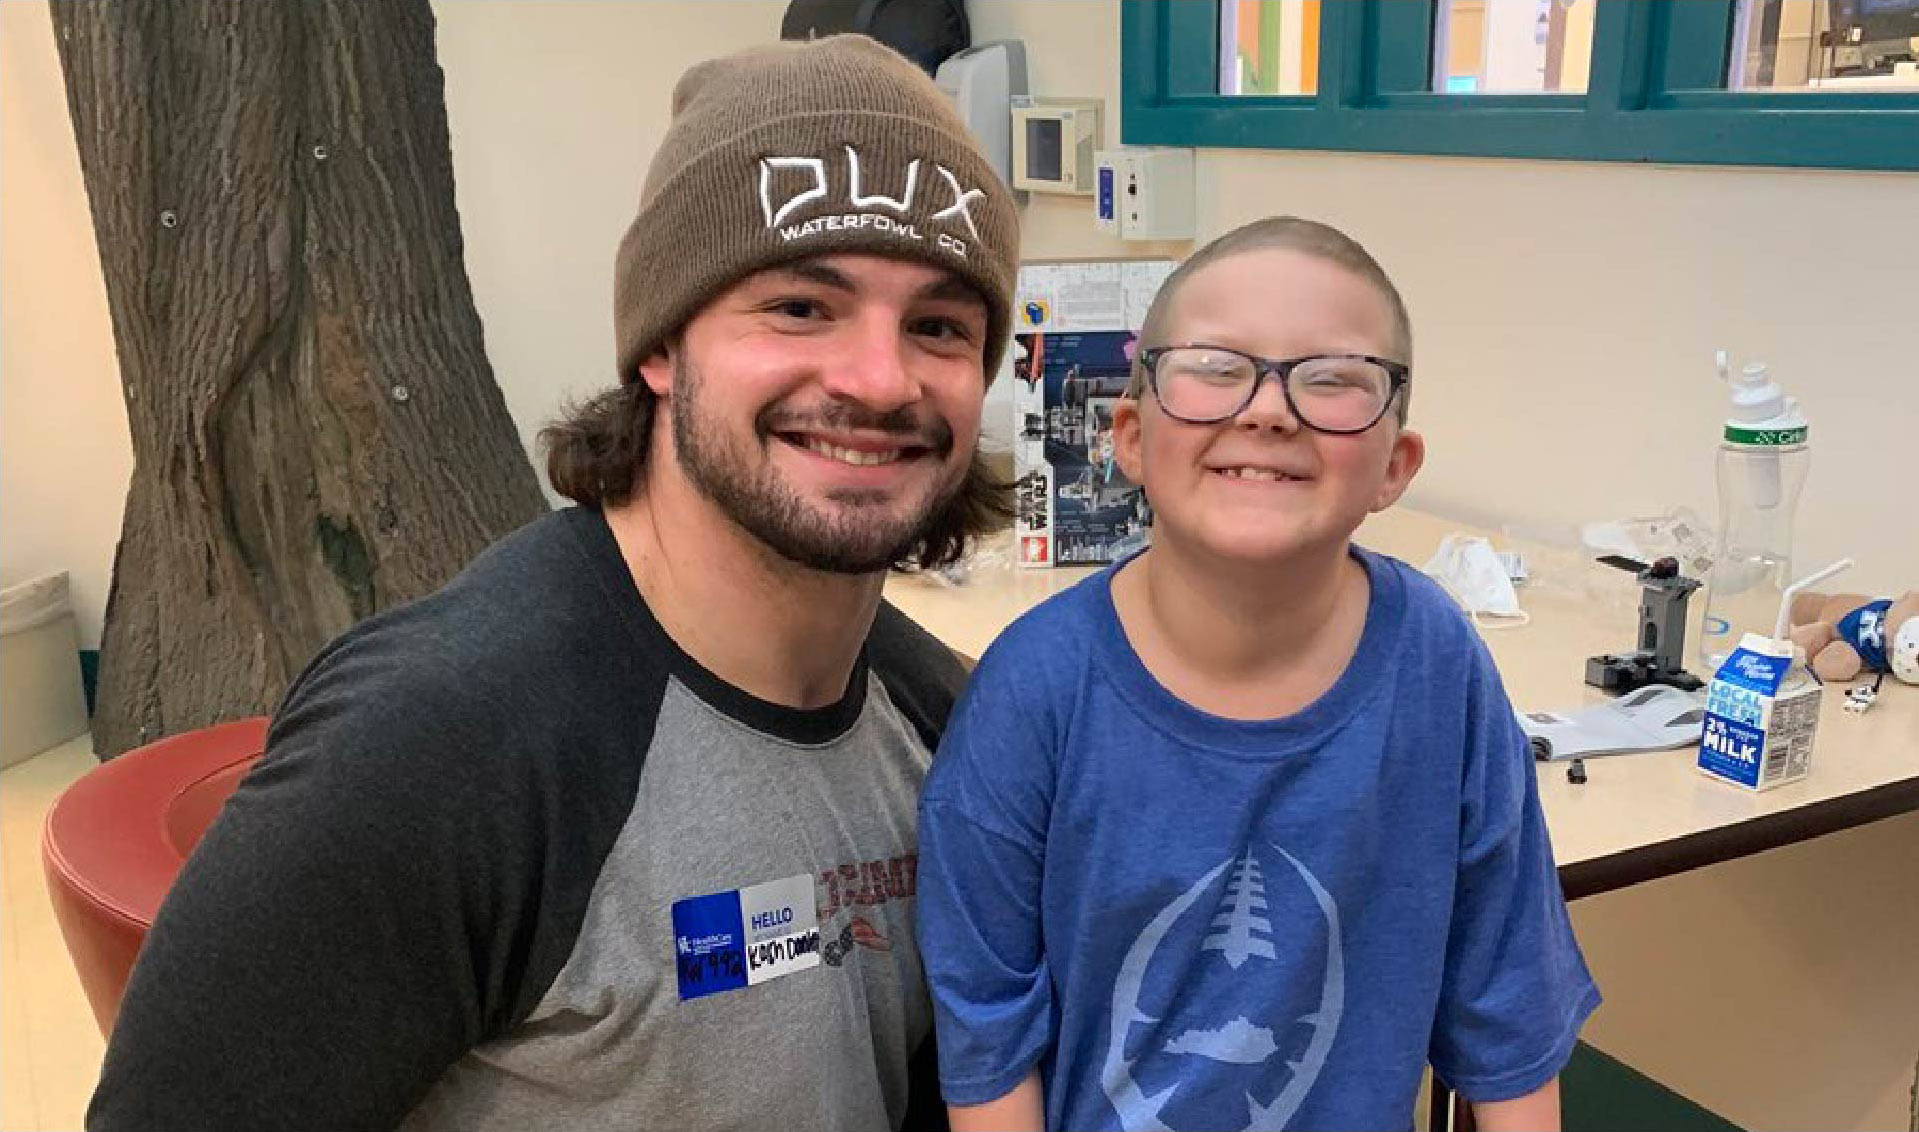 Kash Daniels, a football player, poses for a picture next to a little girl, Ellie. Ellie has buzzed hair and glasses. Kash is wearing a brown toboggan. Both are smiling.